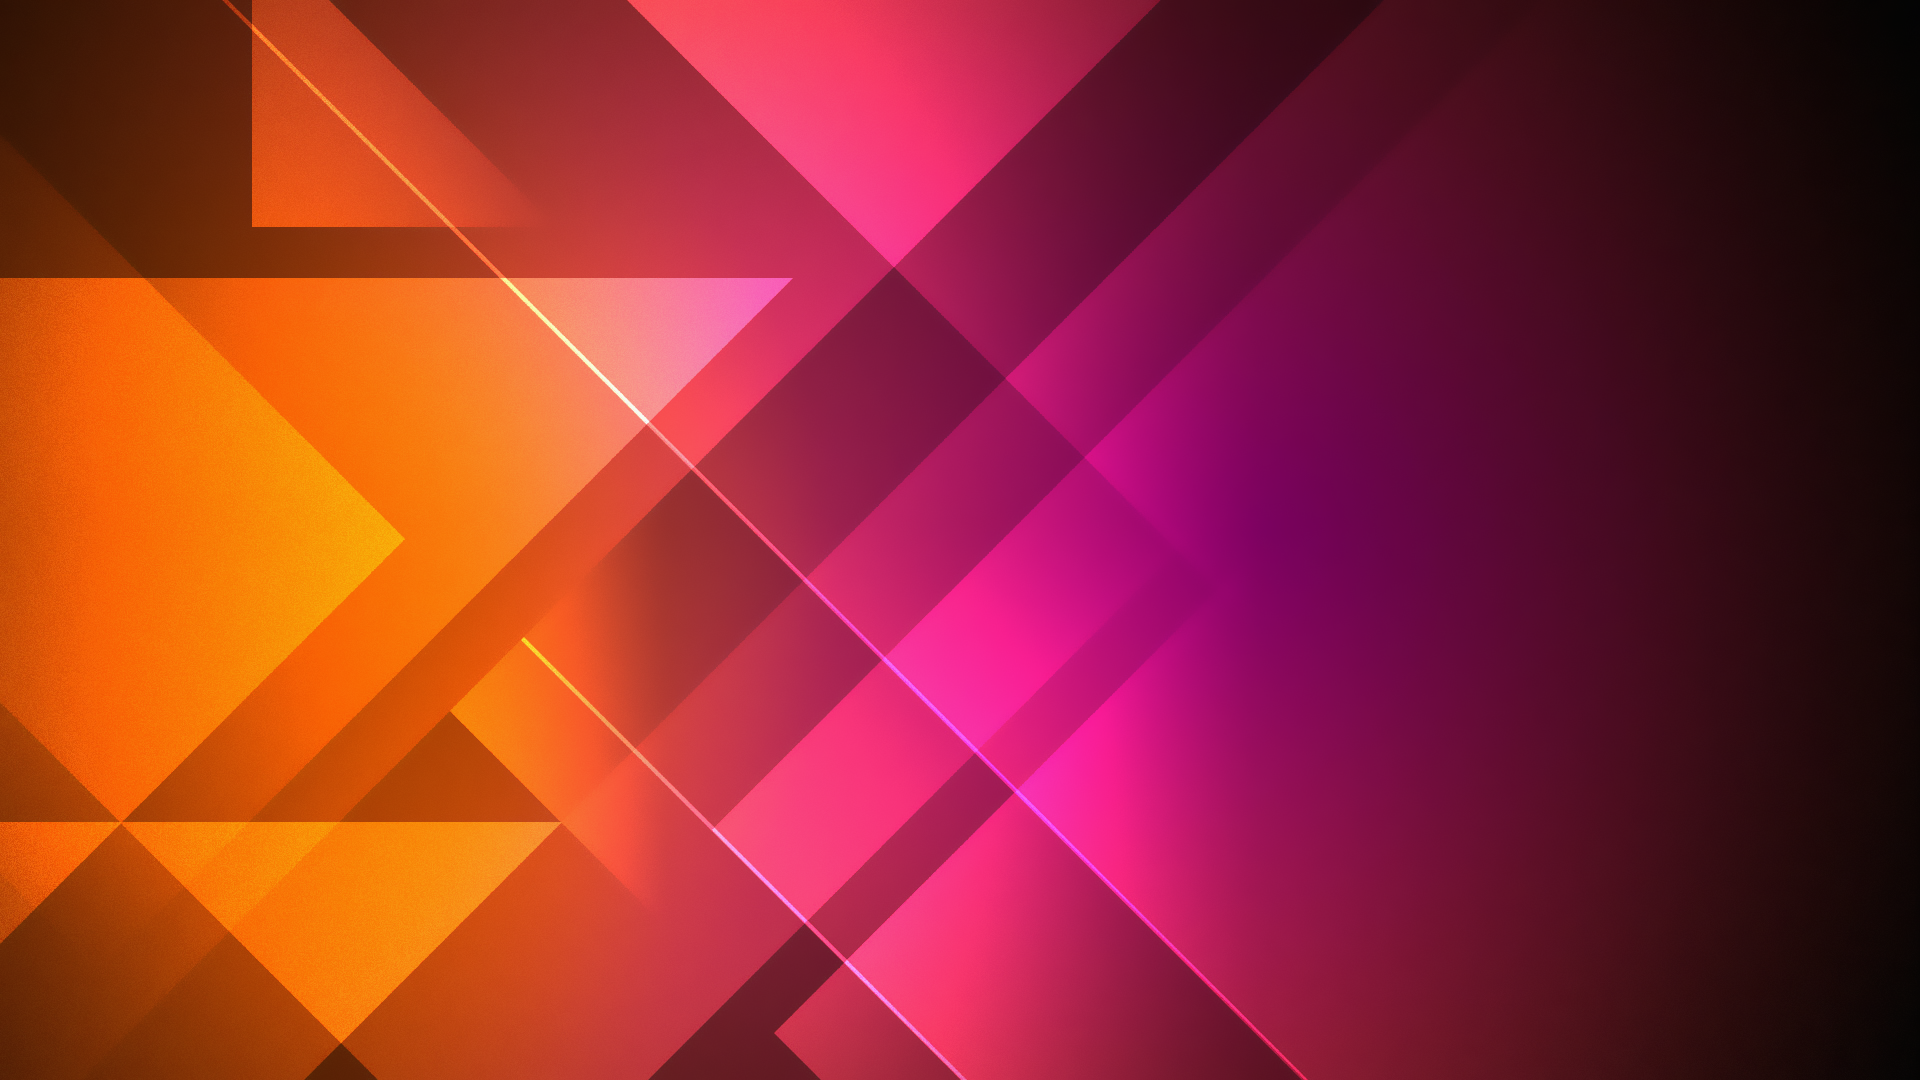 Abstract geometric wallpapers hd 3235 wallpaper cool walldiskpaper - Abstract Geometric Wallpaper Wallpapersafari